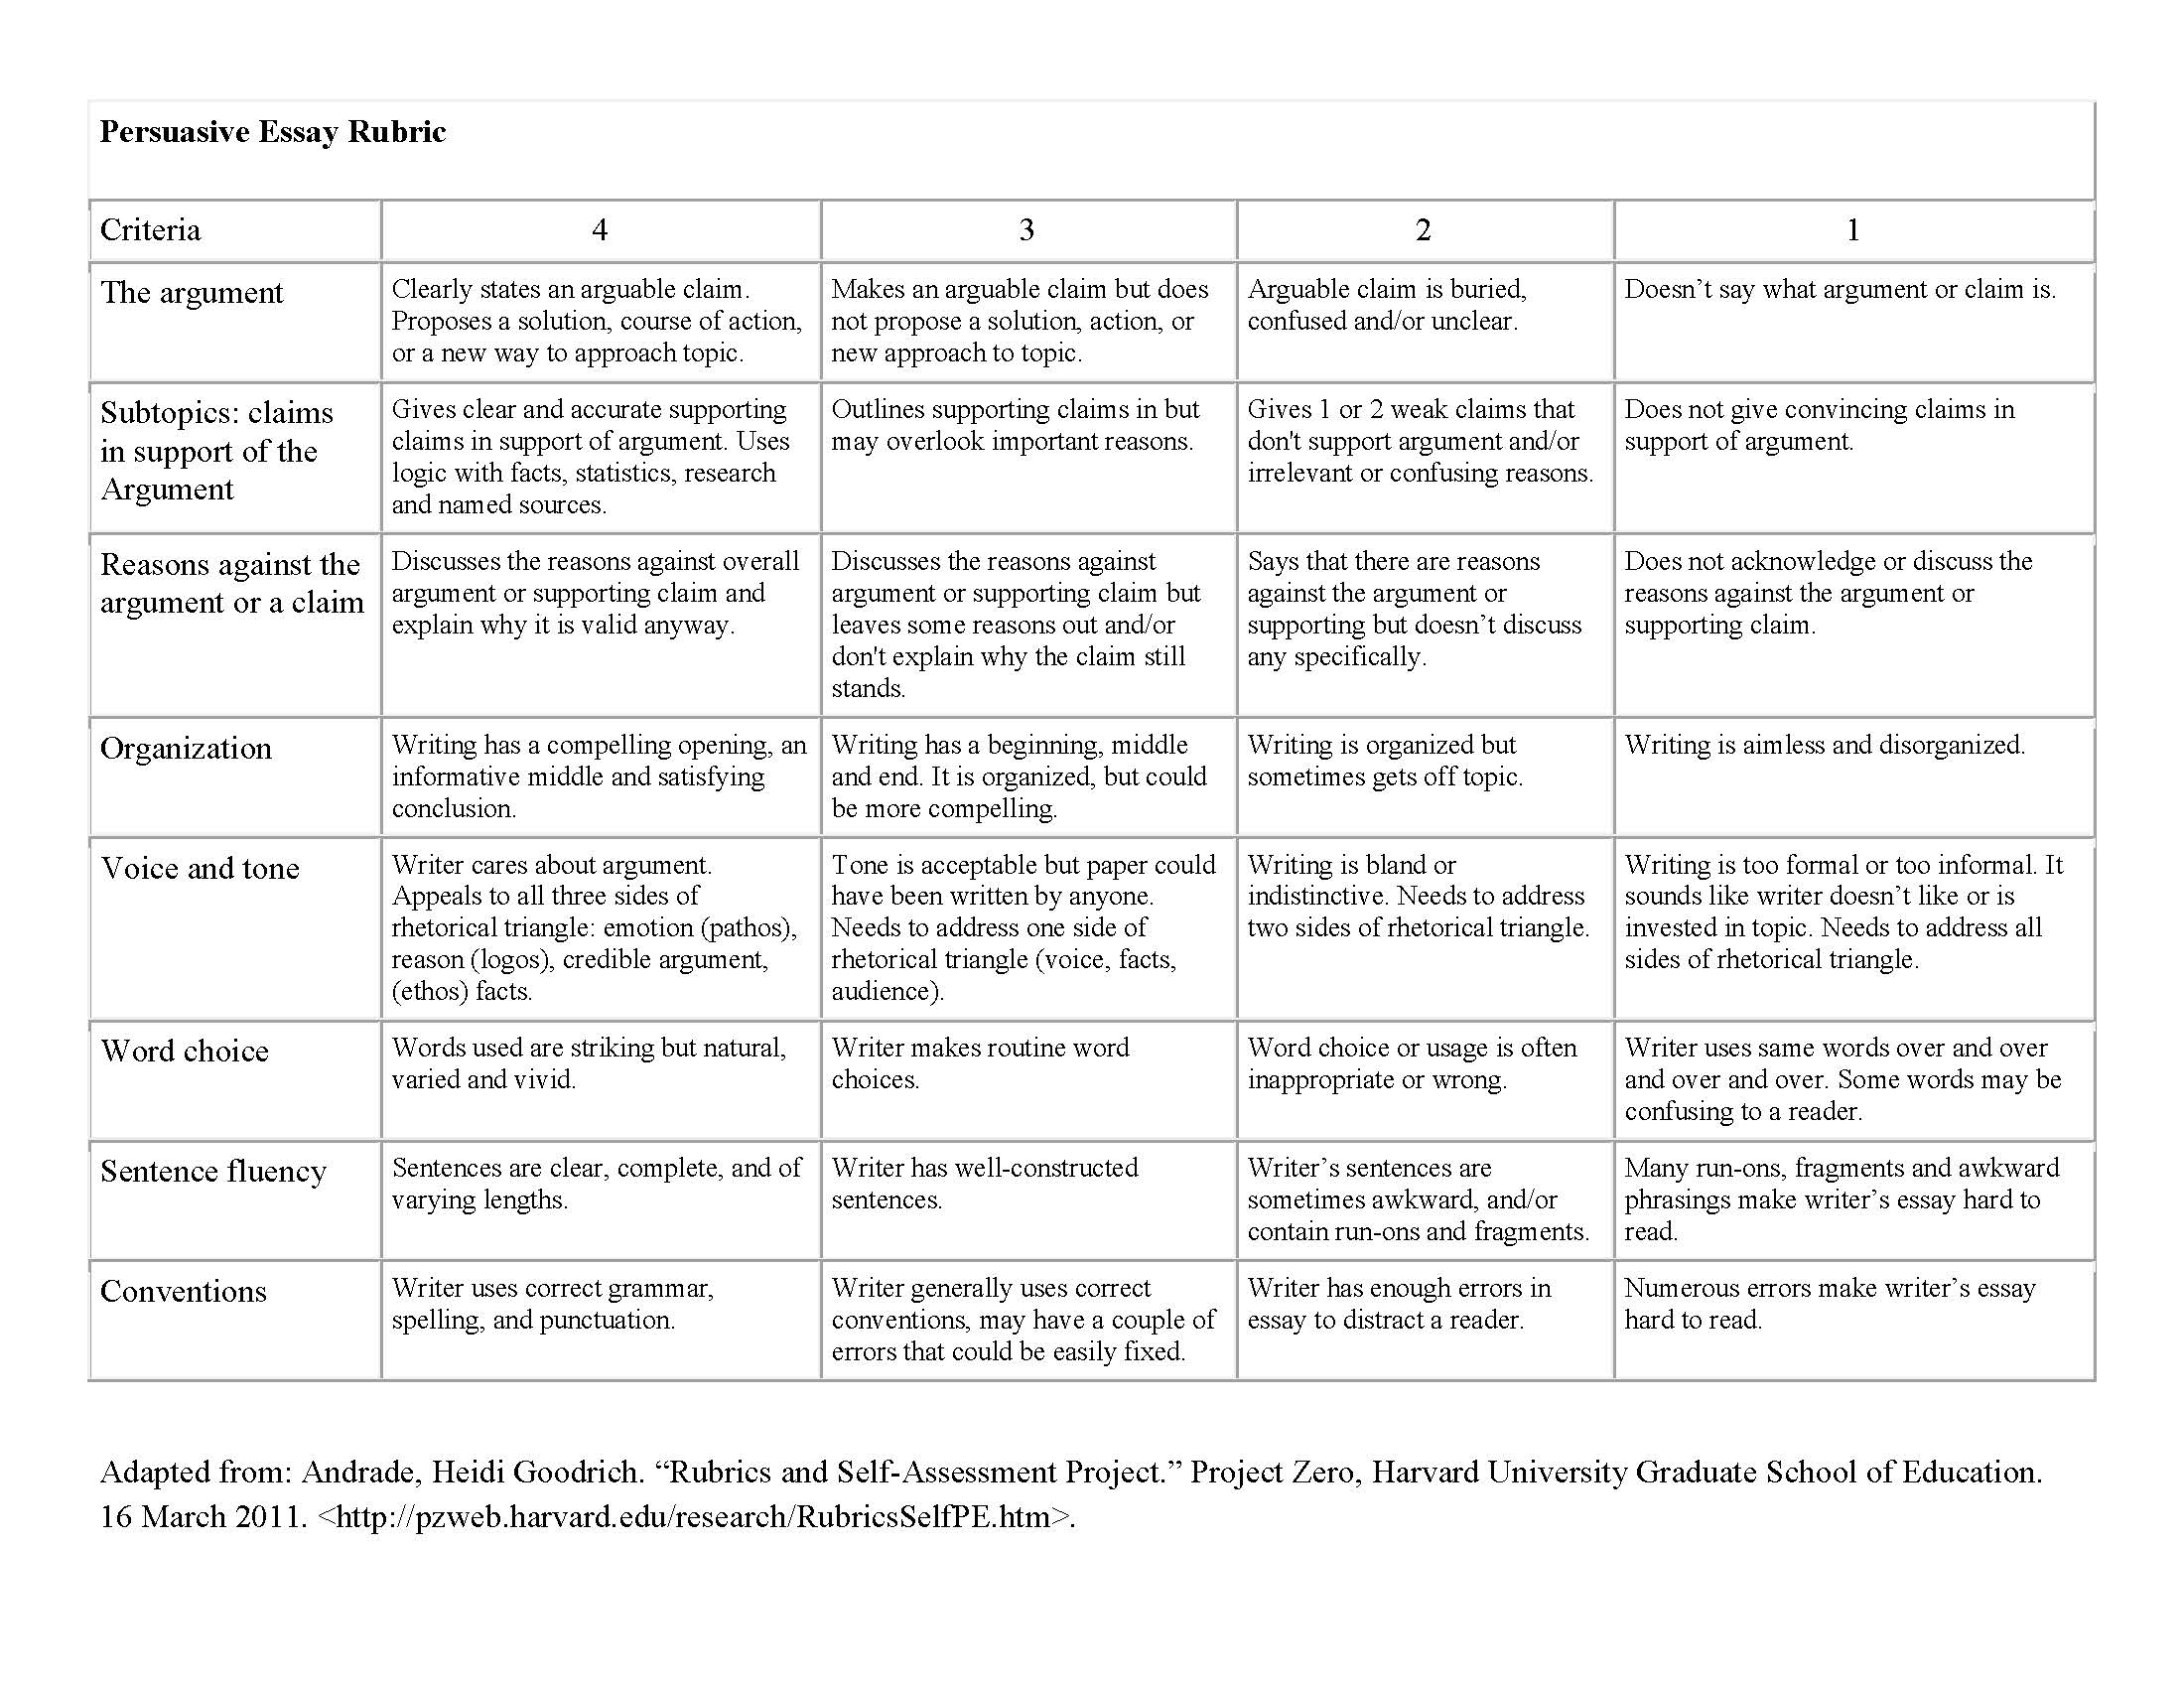 009 Art History Research Paper Rubric Handout Persuasive Unique Full